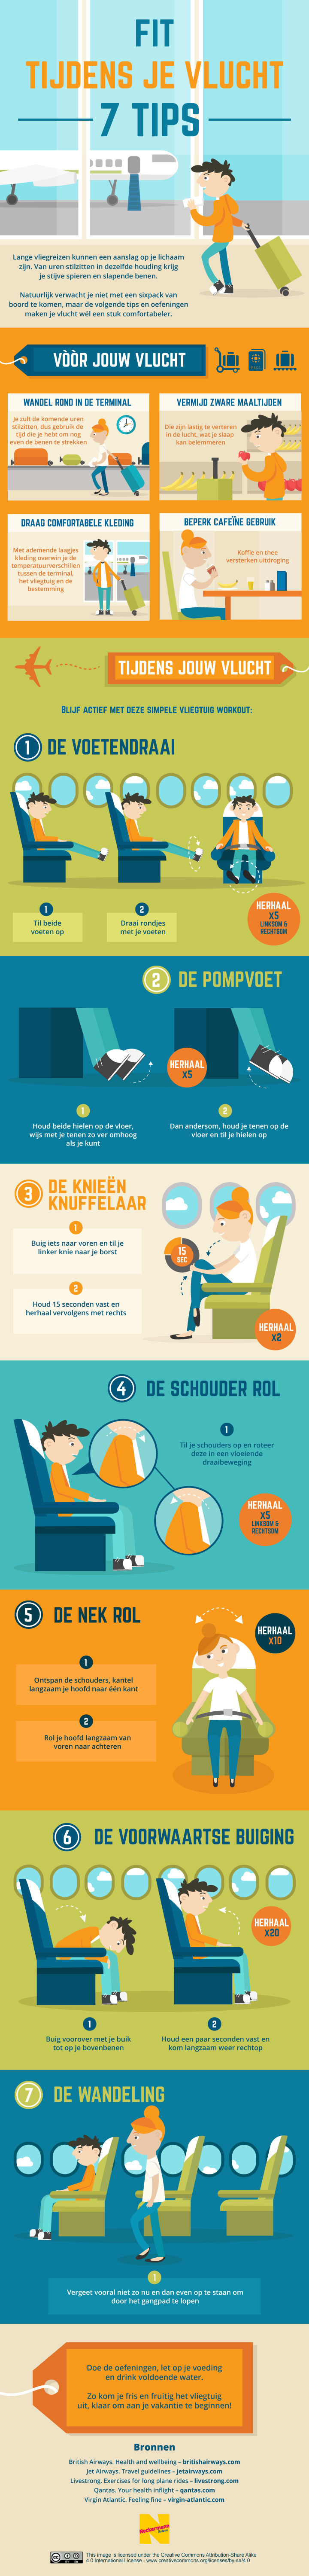 Your-Flying-Health-and-Fitness-Guide-NL-infographic